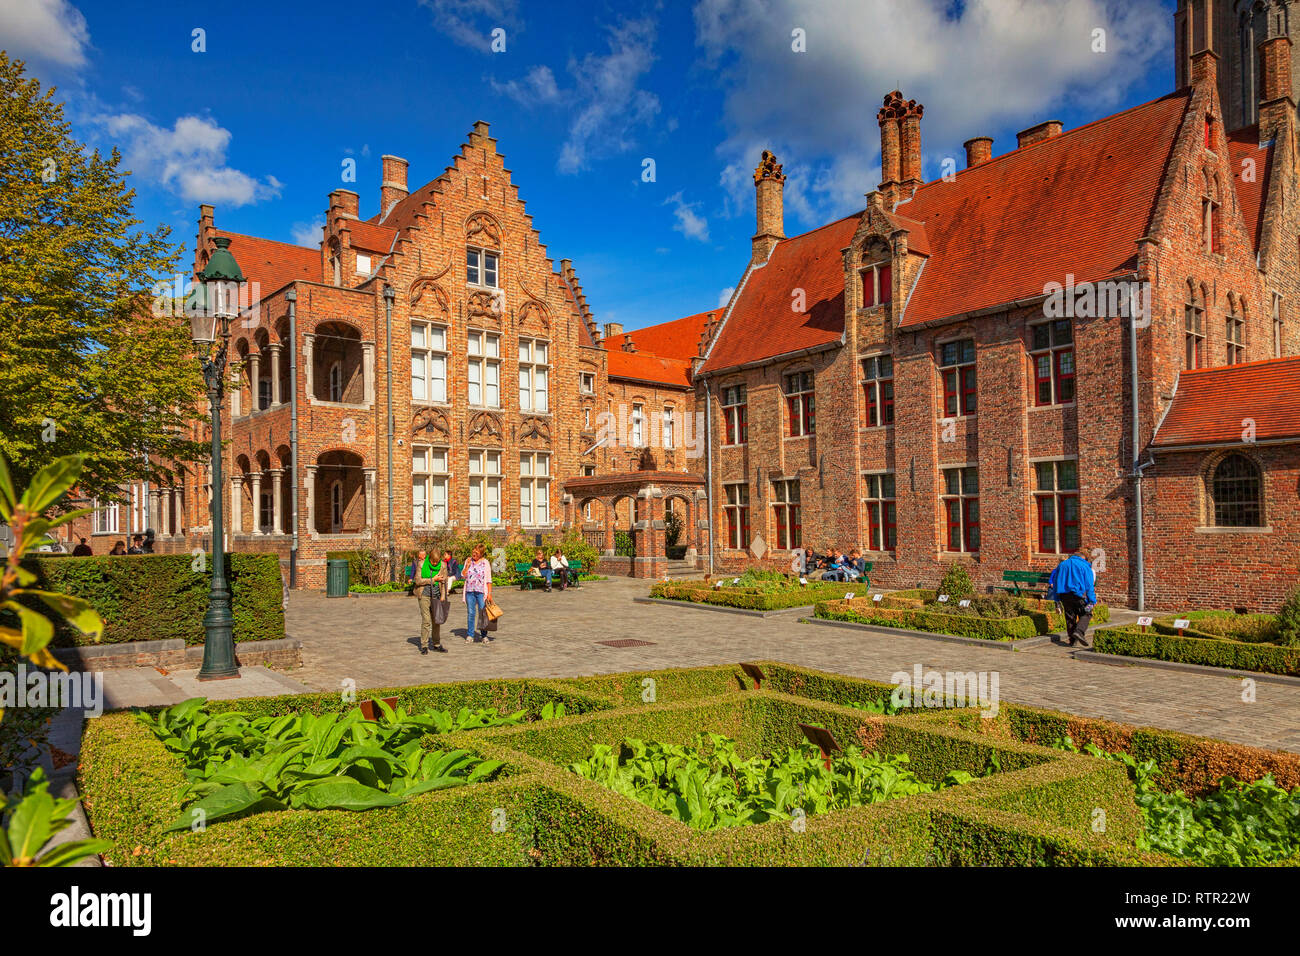 25 September 2018: Bruges, Belgium - People strolling in the courtyard of the medieval St John's Hospital in Bruges, Belgium, on a glorious autumn day Stock Photo